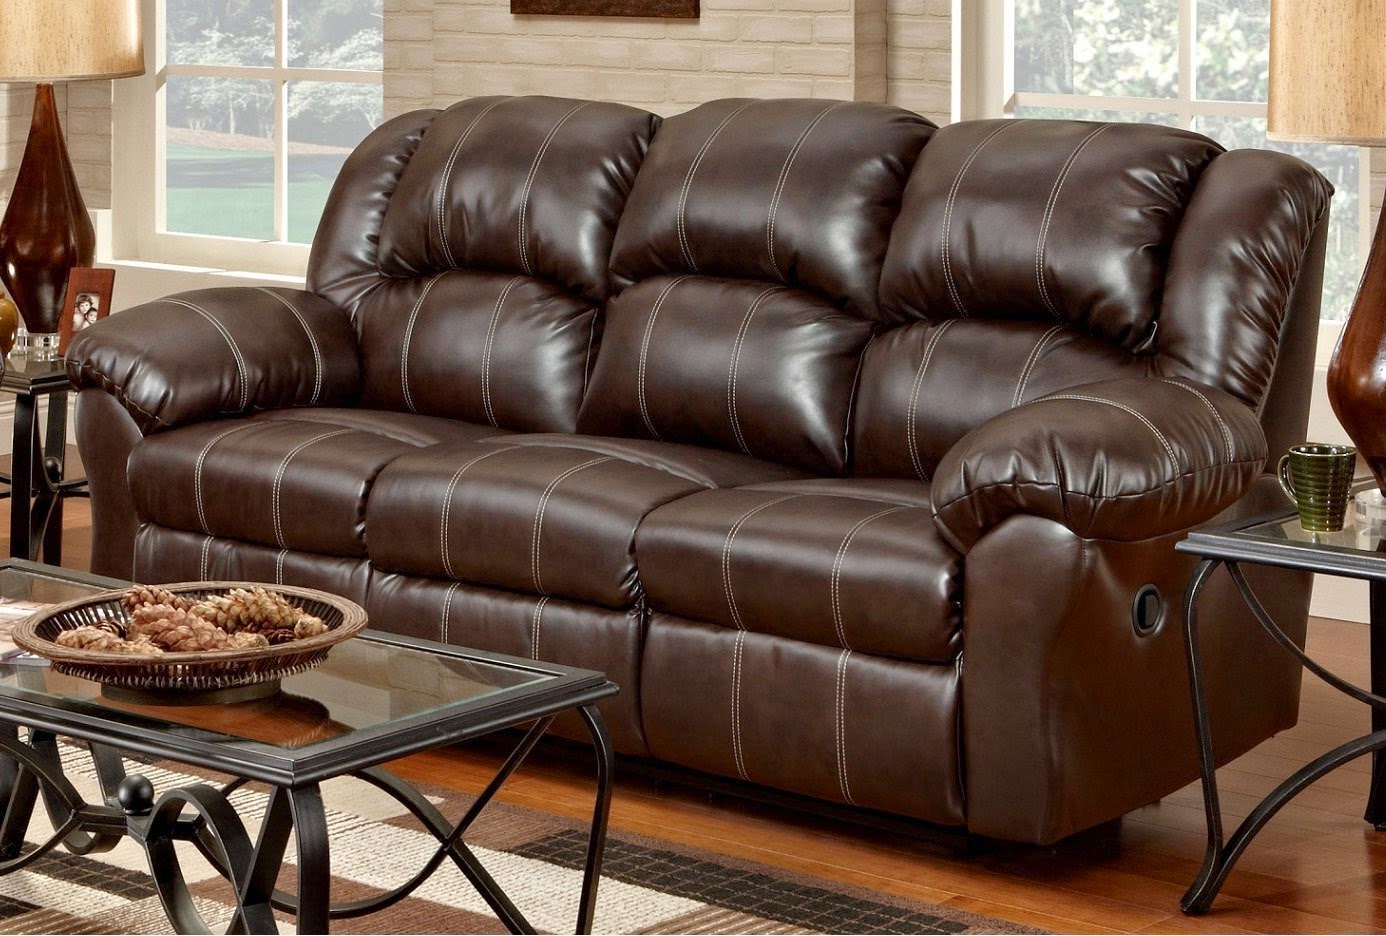 Best Leather Reclining Sofa Brands Reviews: Alpha Leather ...